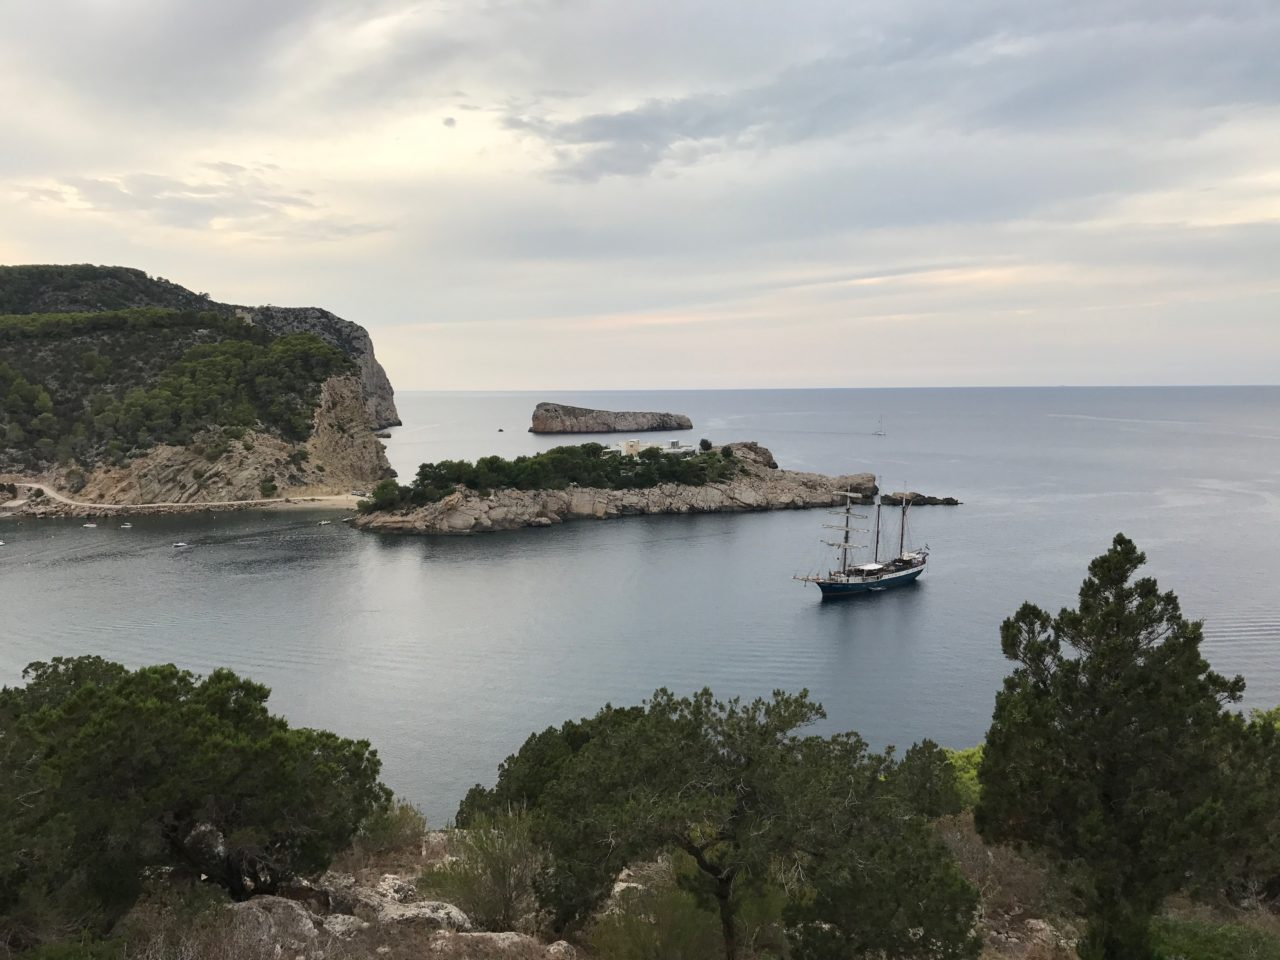 Wide View Of Sail Boat By Cliff Island In Cove